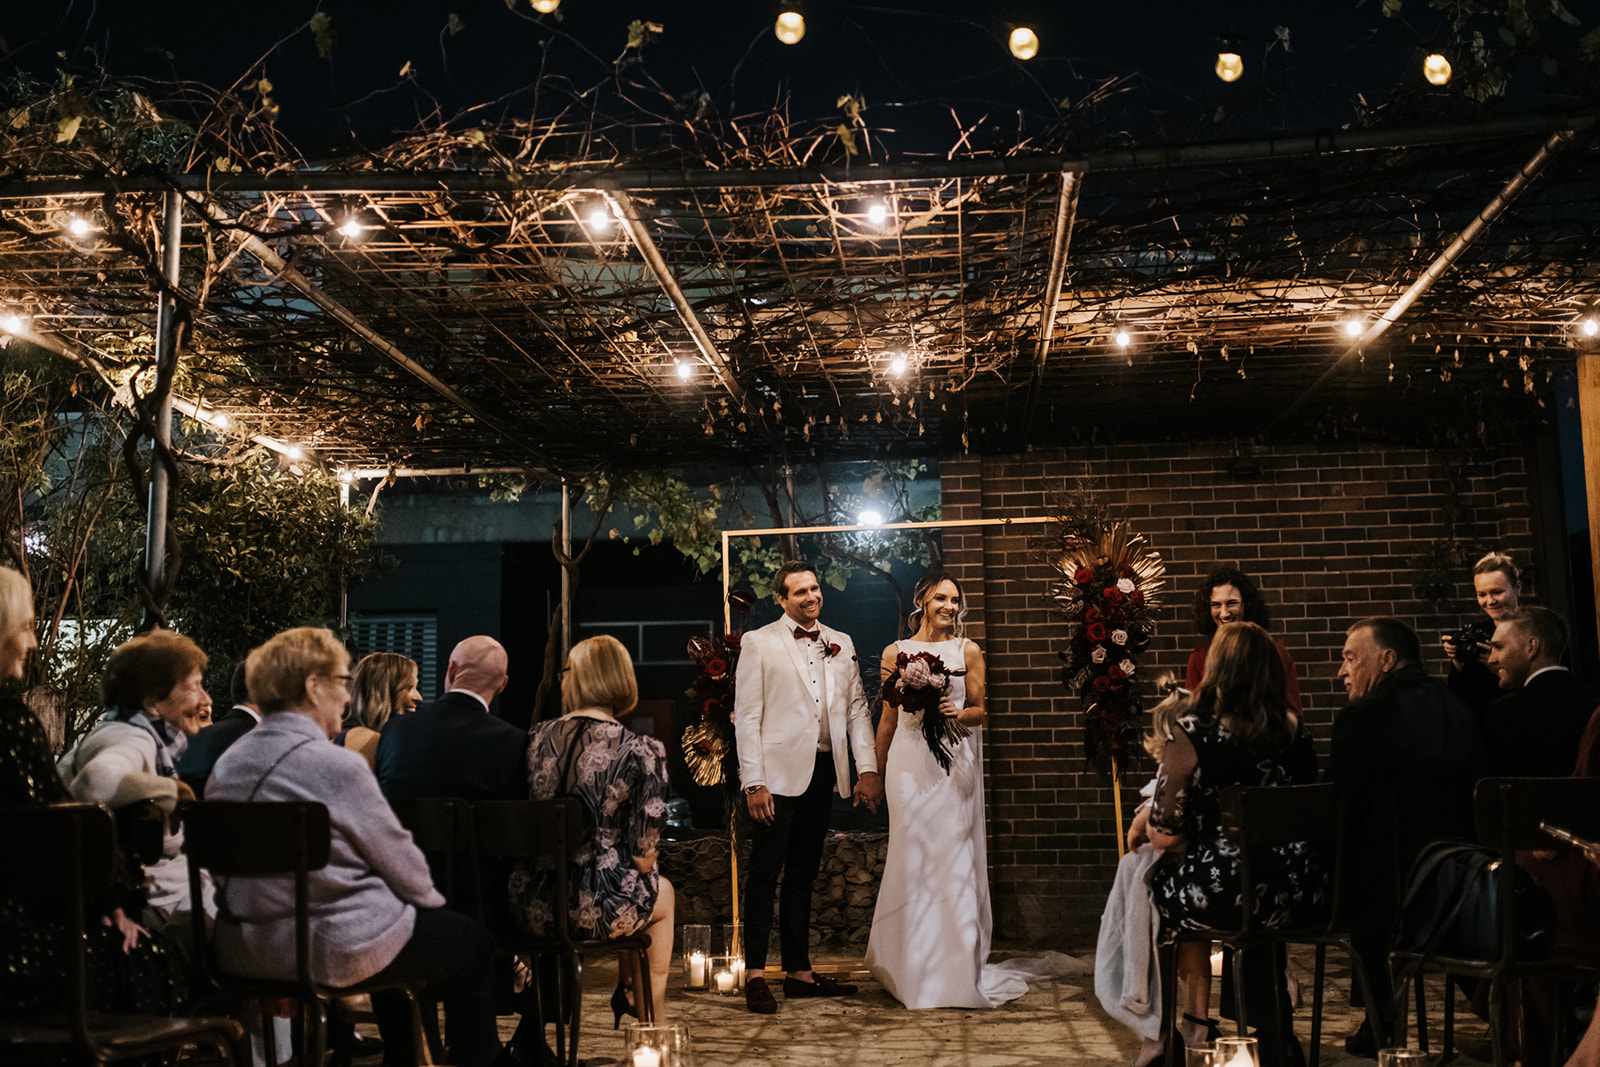 Lauren & Daniels Melbourne Wedding   Photography by Damien Milan Photography    LOVE FIND CO. Bridal Directory